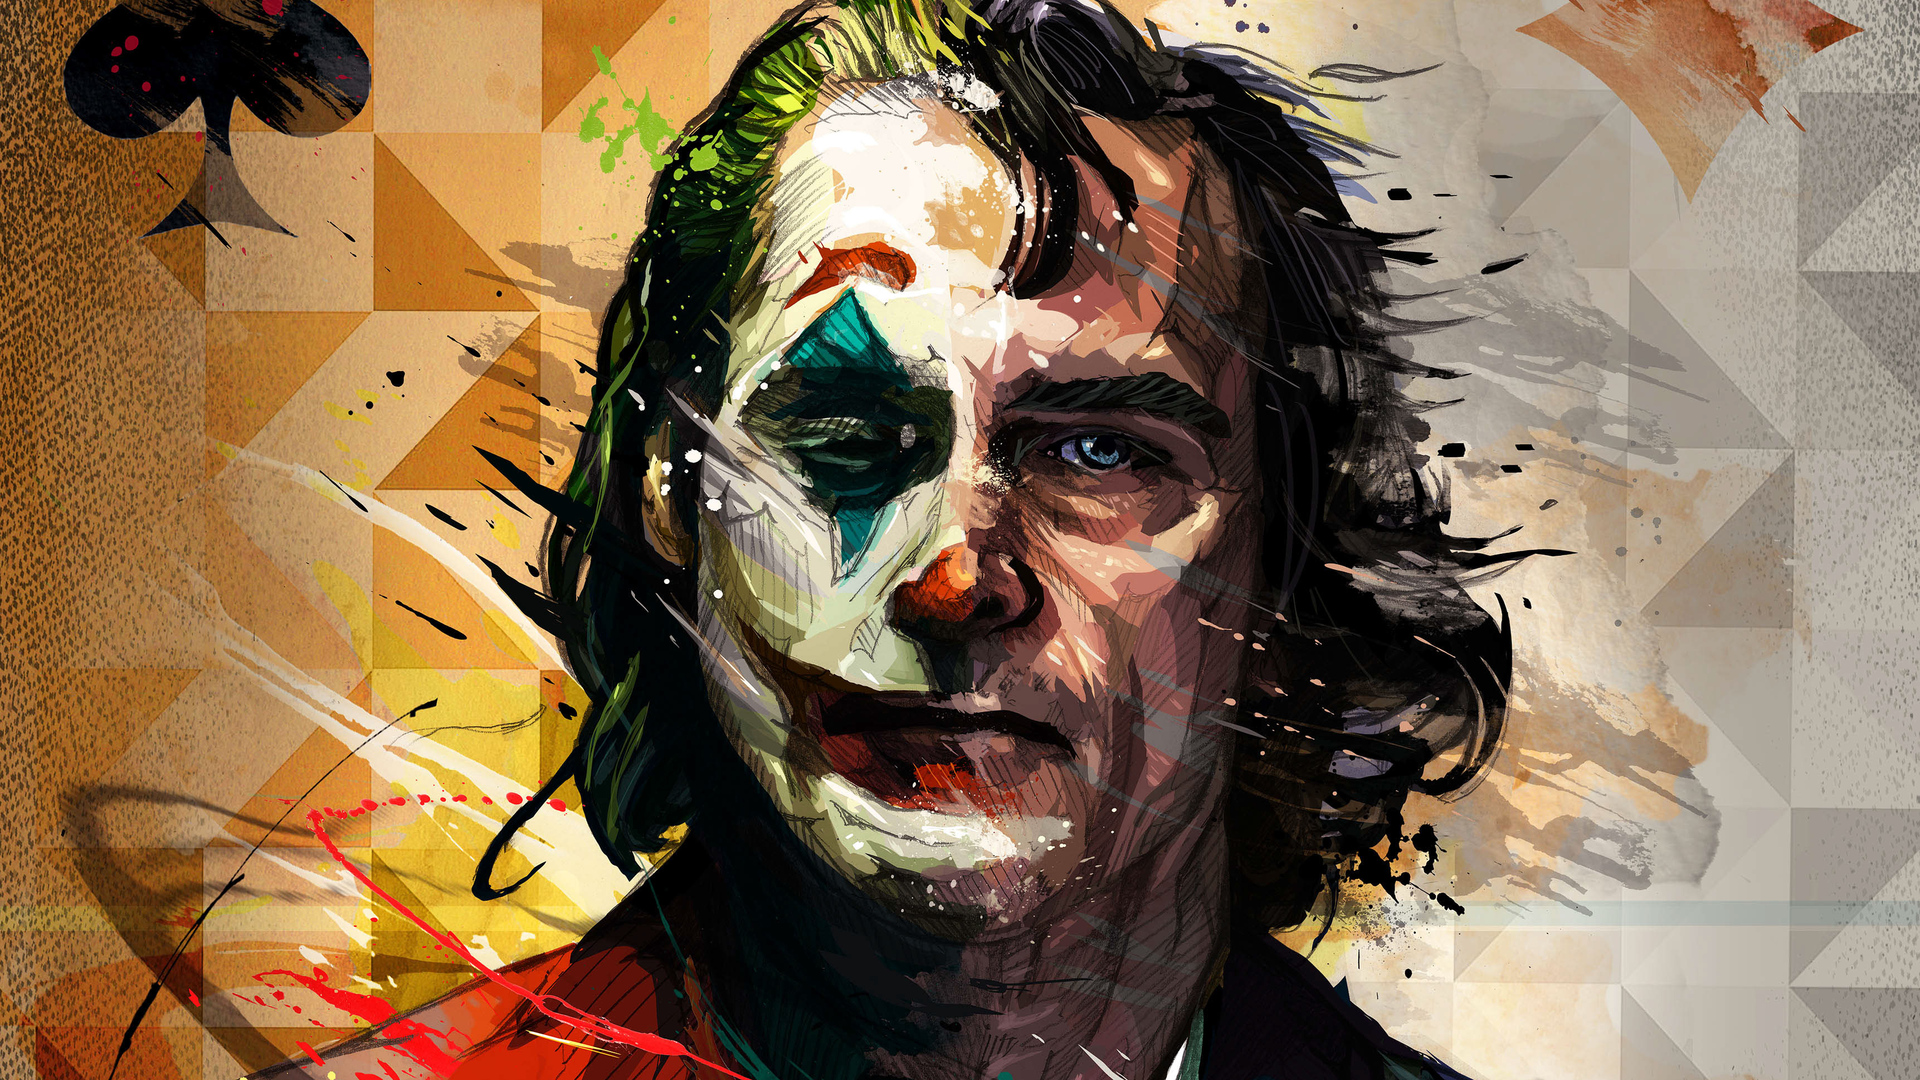 joker-2019-artwork-i6.jpg